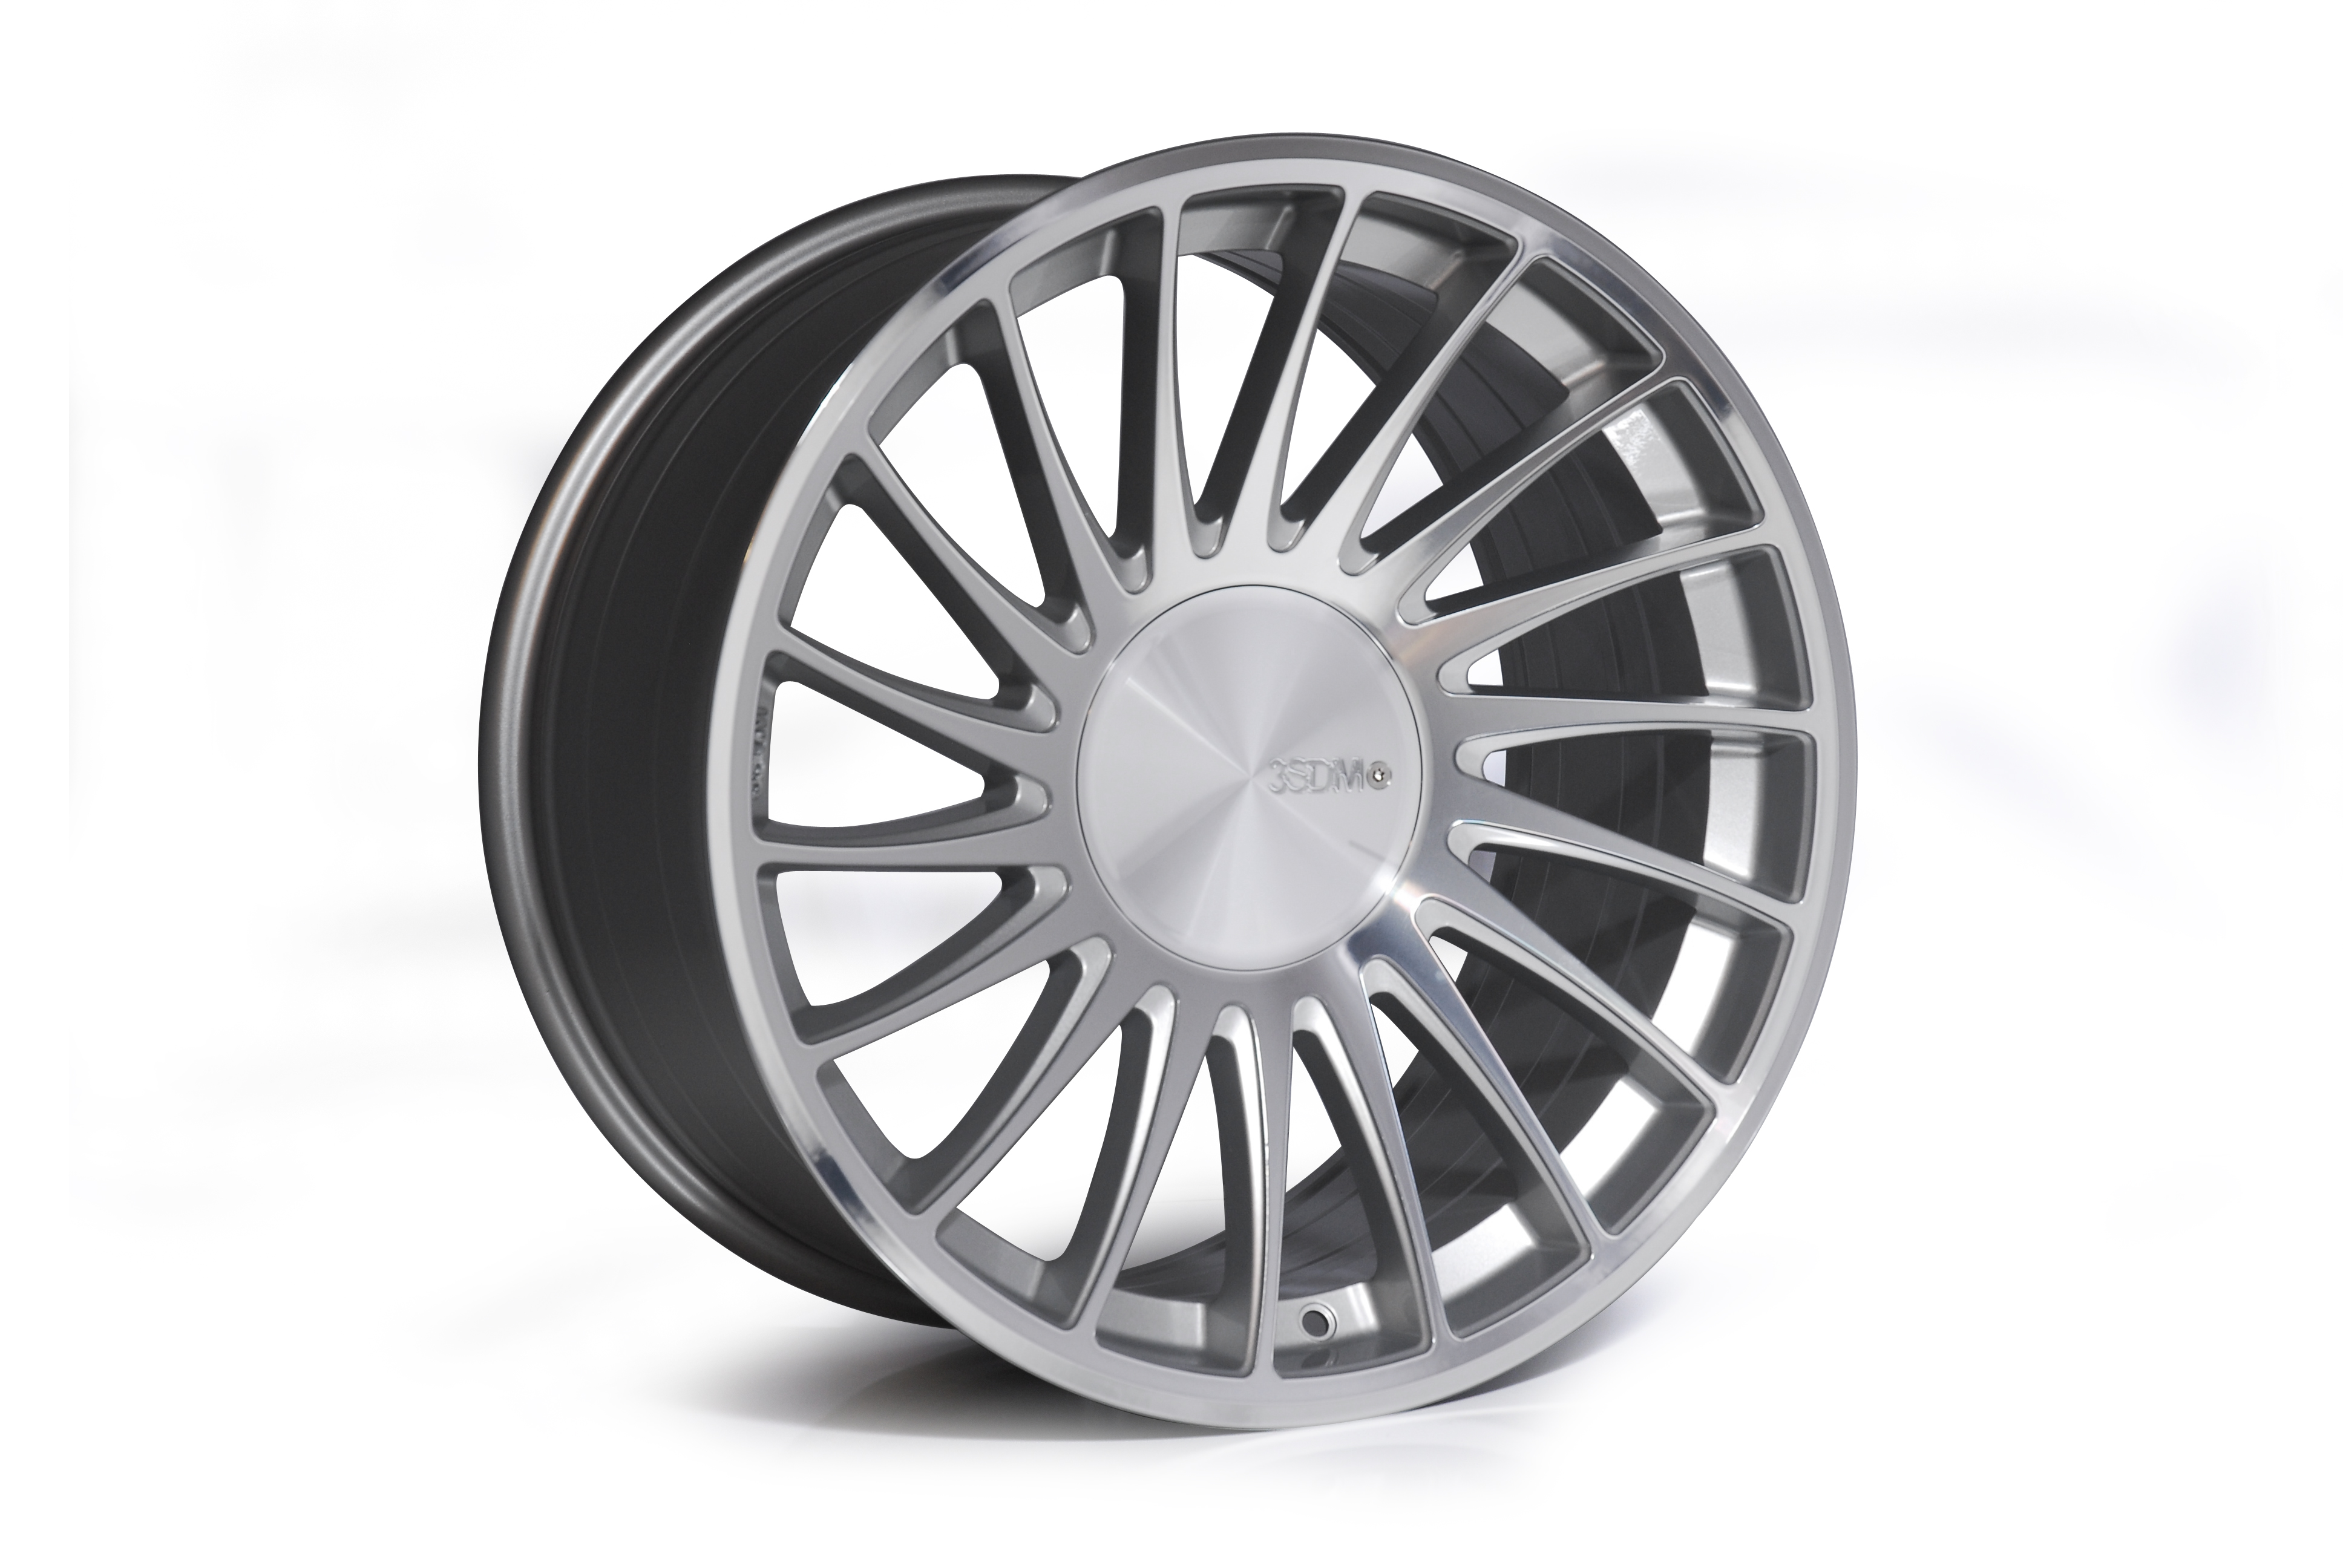 "NEW 19"" 3SDM 0.04 ALLOY WHEELS IN SILVER POLISHED WITH DEEPER CONCAVE 10"" REAR"